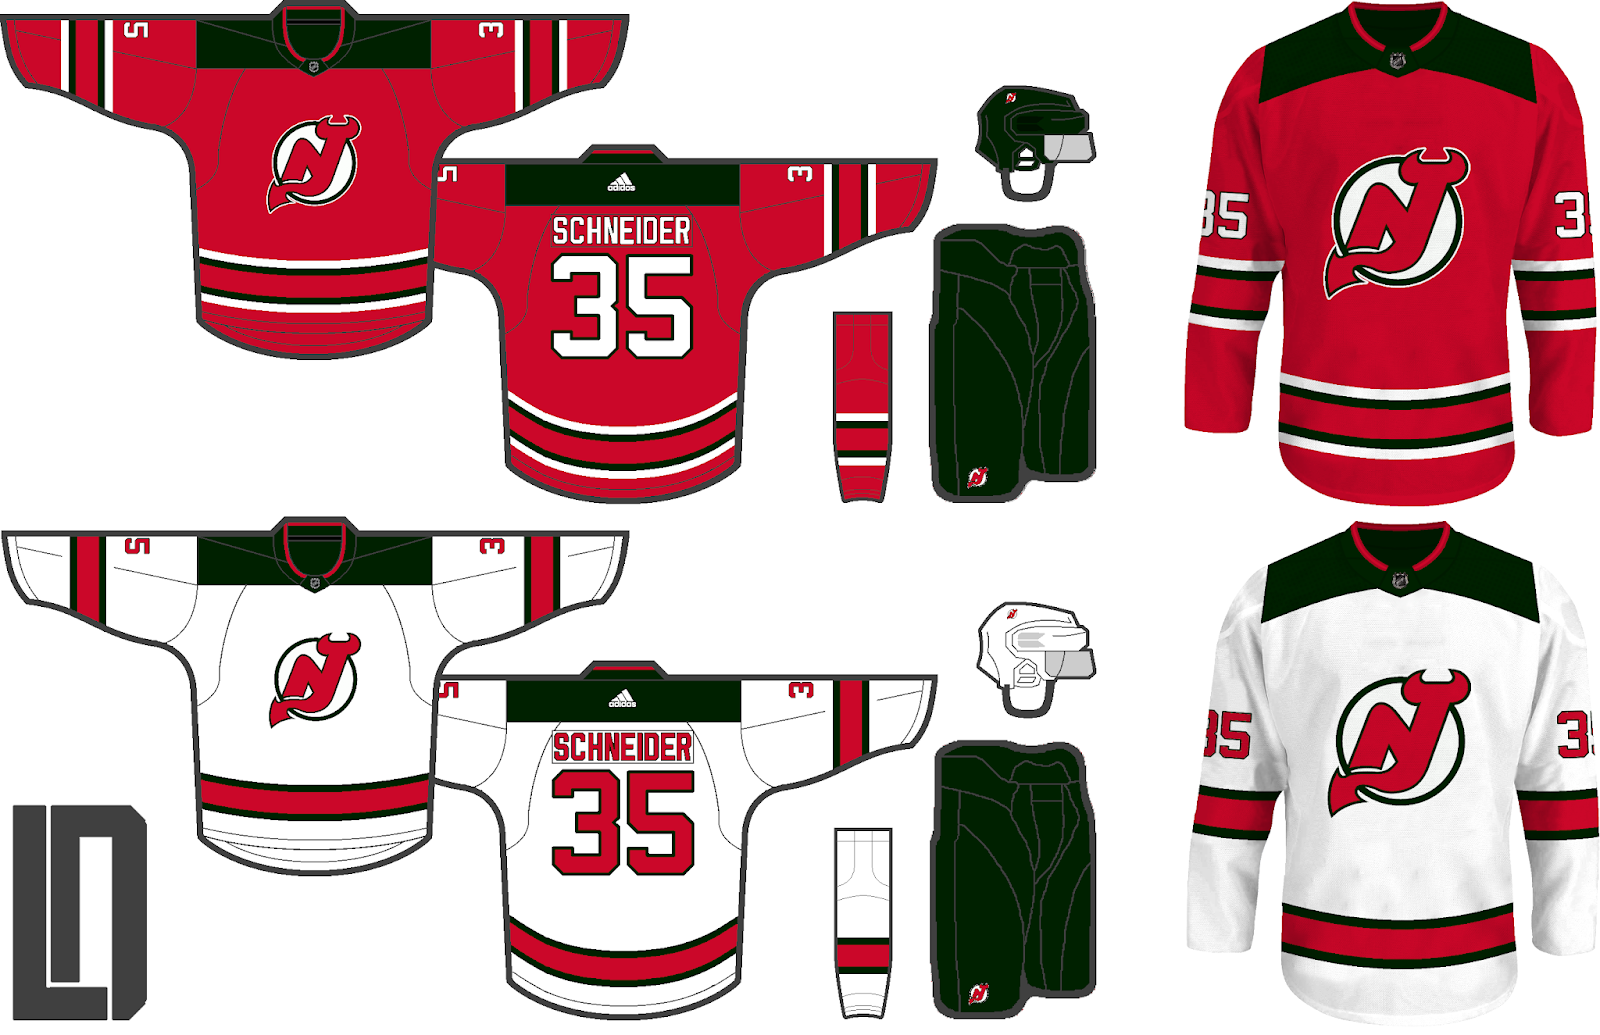 New+Jersey+Devils+Concept2.png